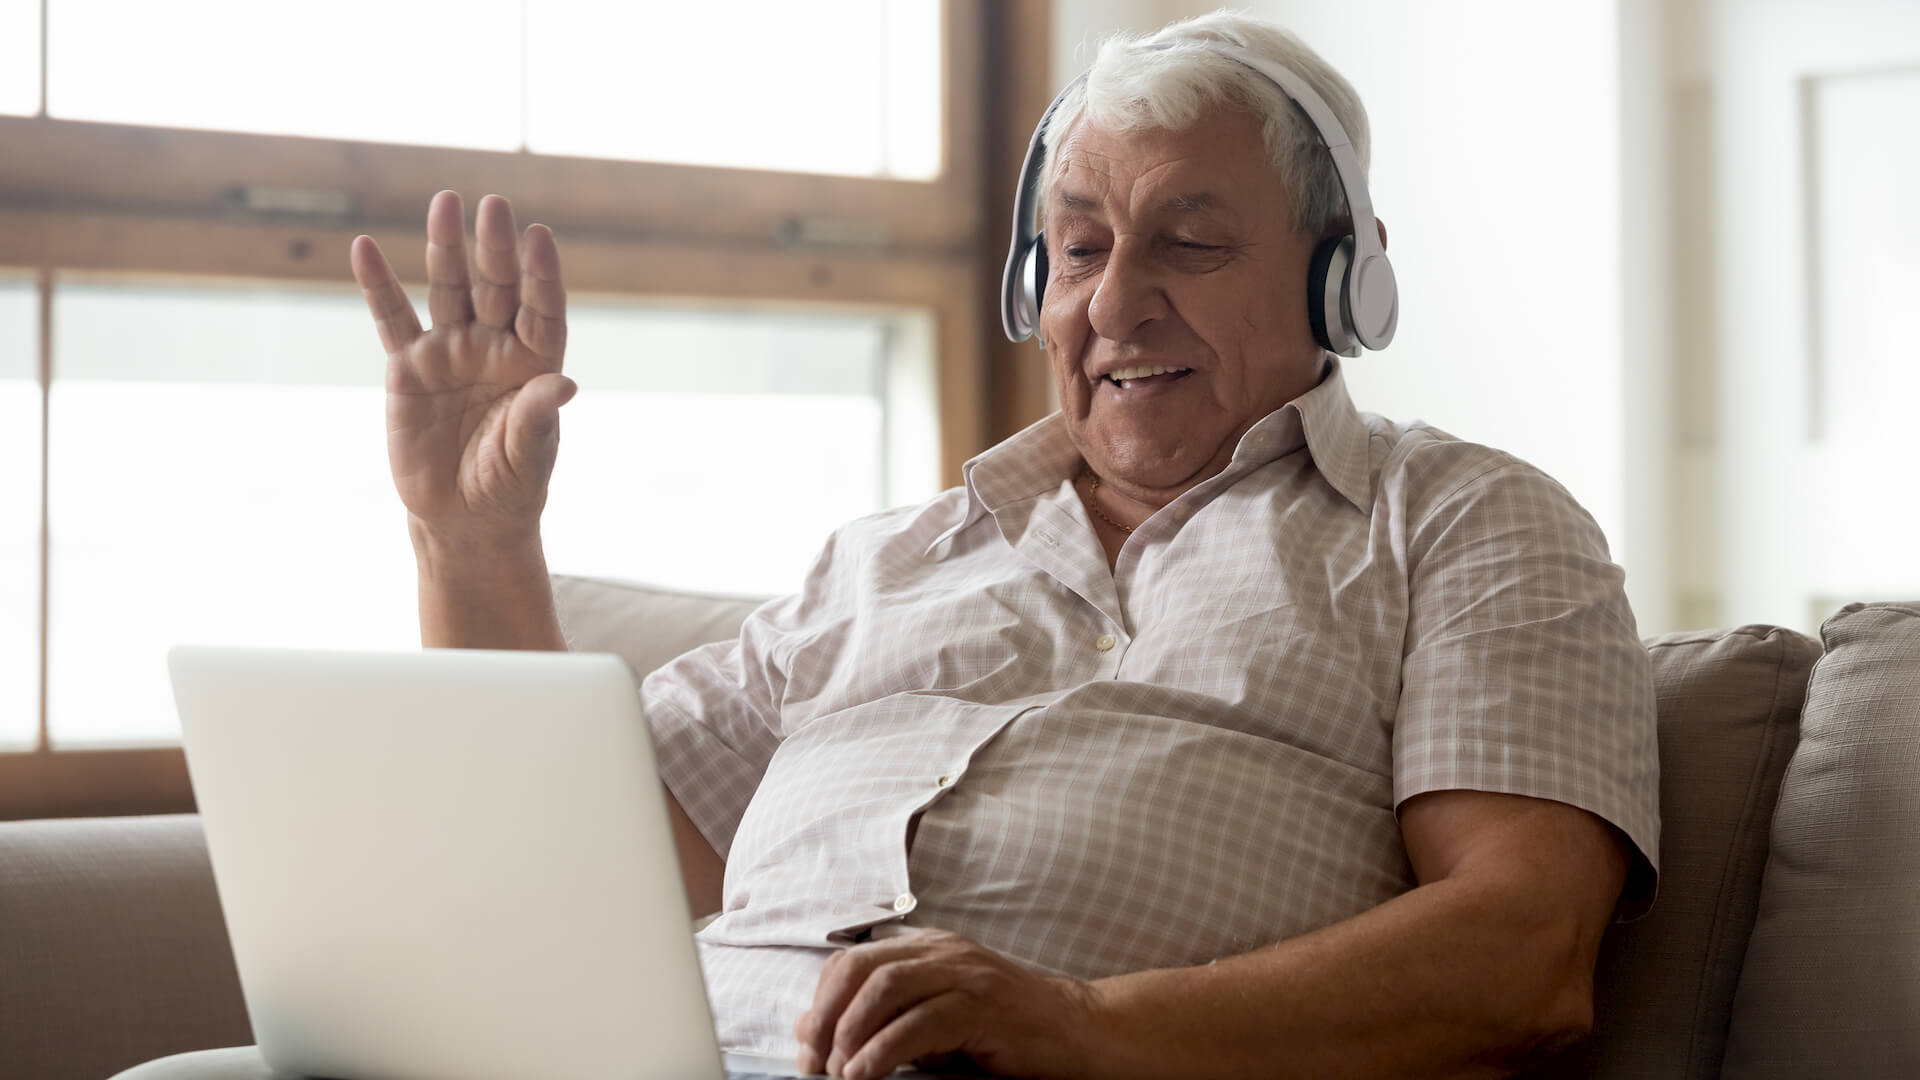 Creative Ways for Seniors to Stay Connected During Social Distancing